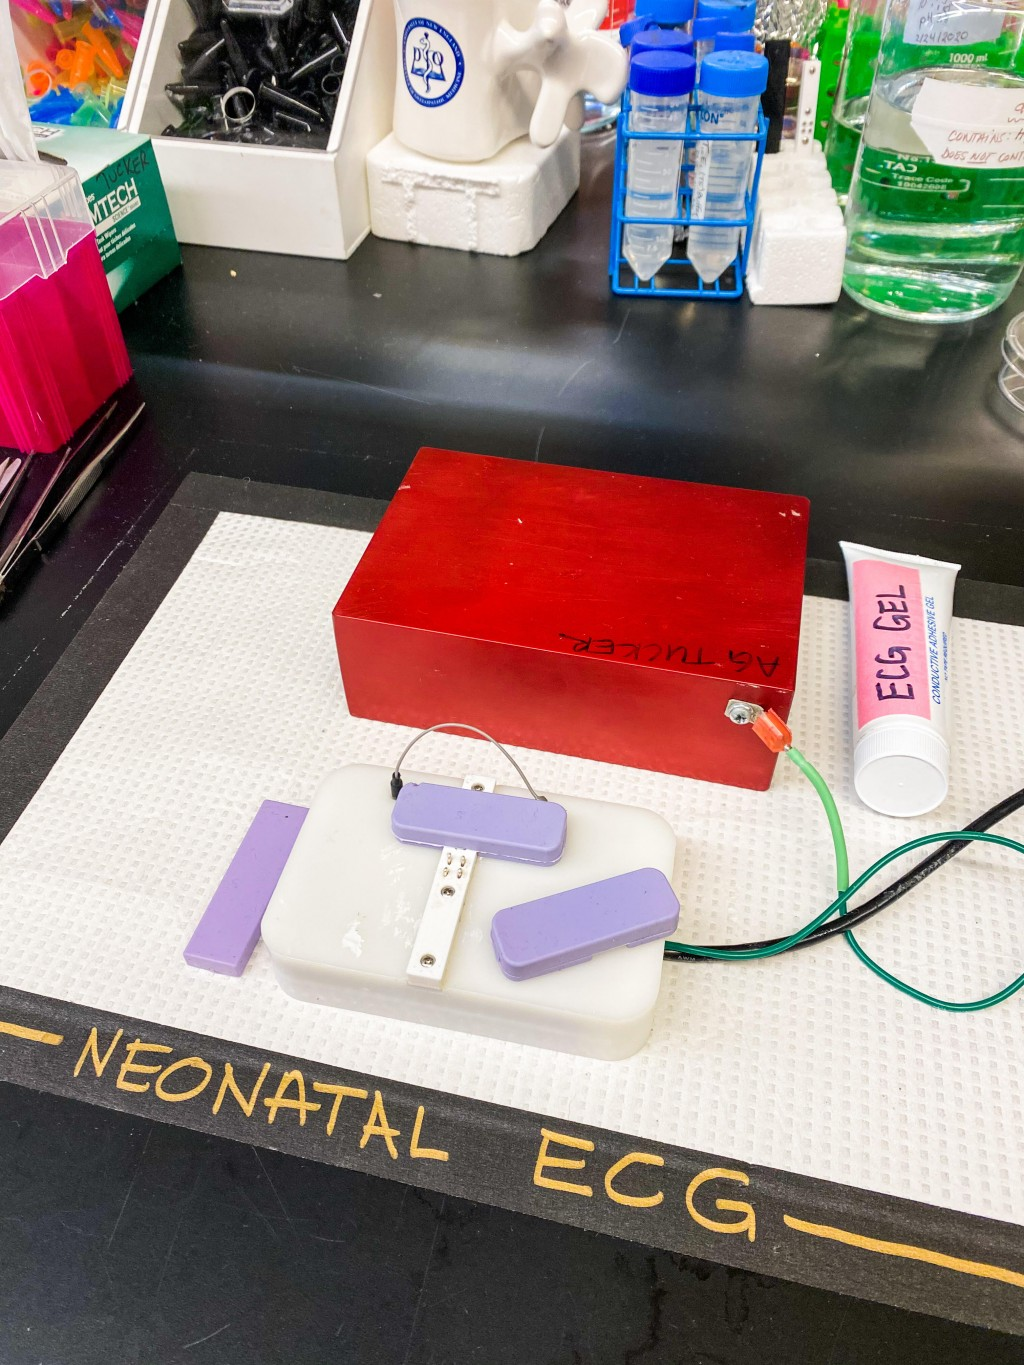 The system developed to take ECGs of neonatal mice pups.